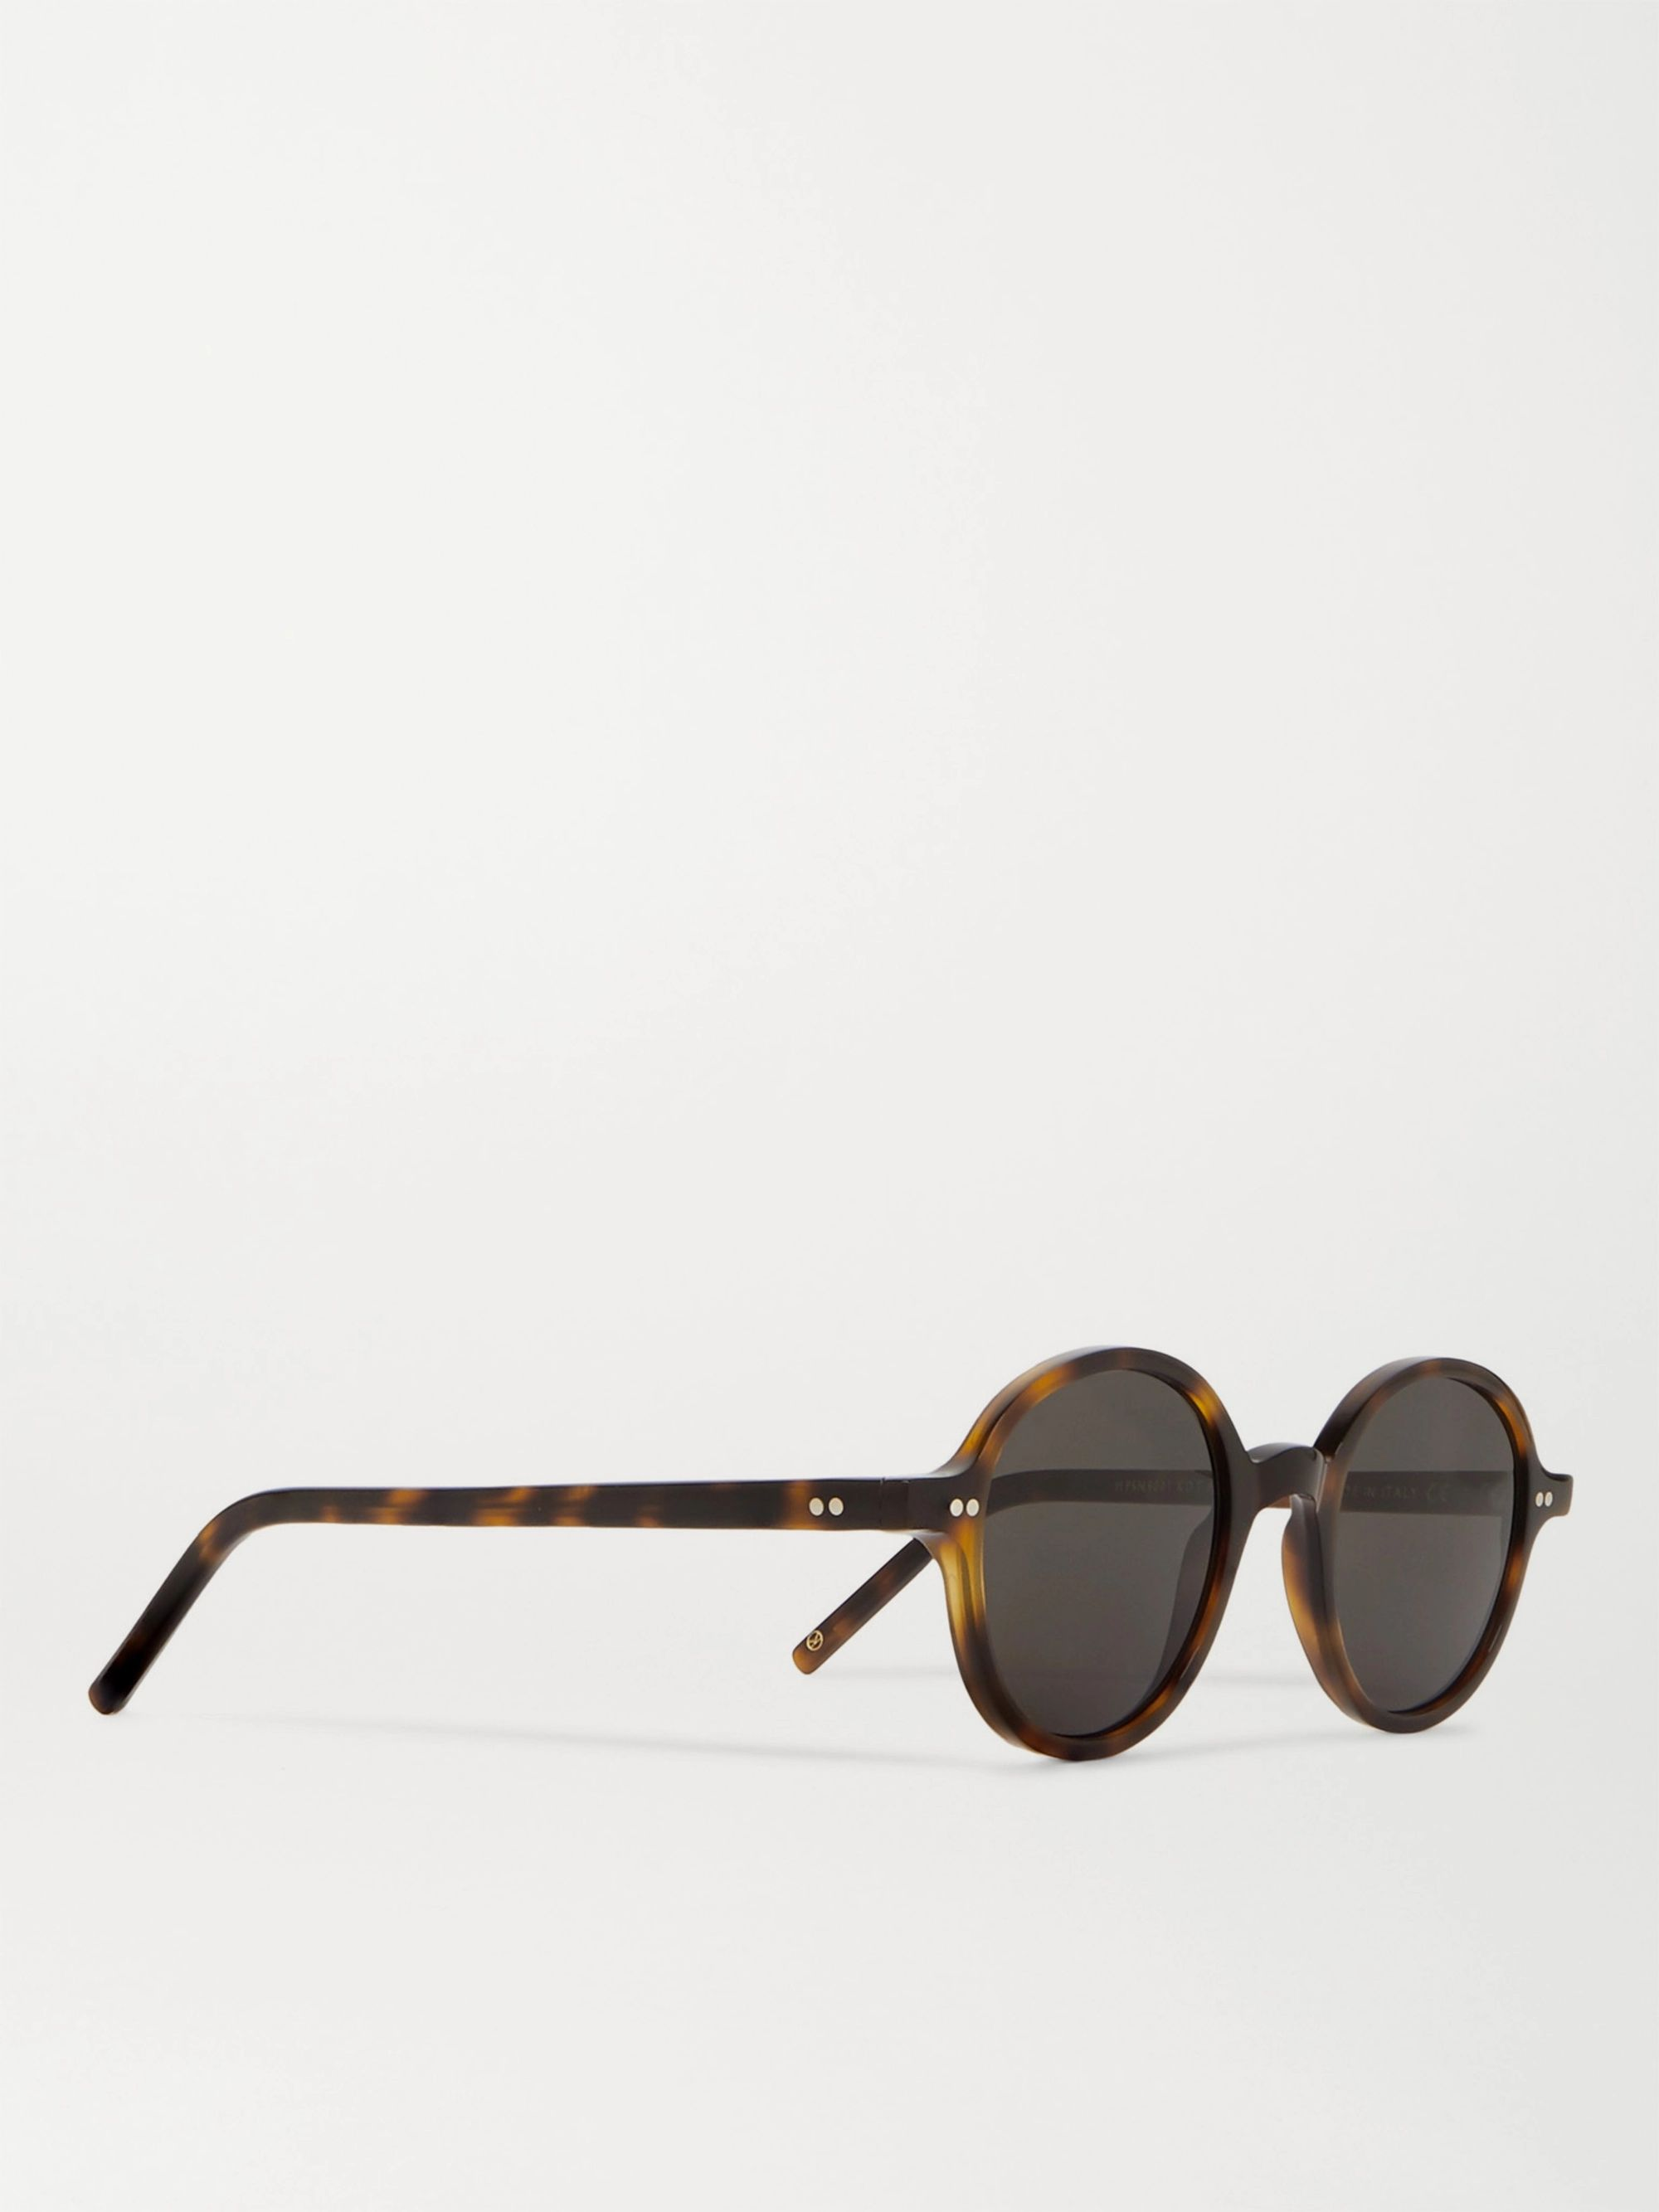 Kingsman + Cutler and Gross Round-Frame Tortoiseshell Acetate Sunglasses